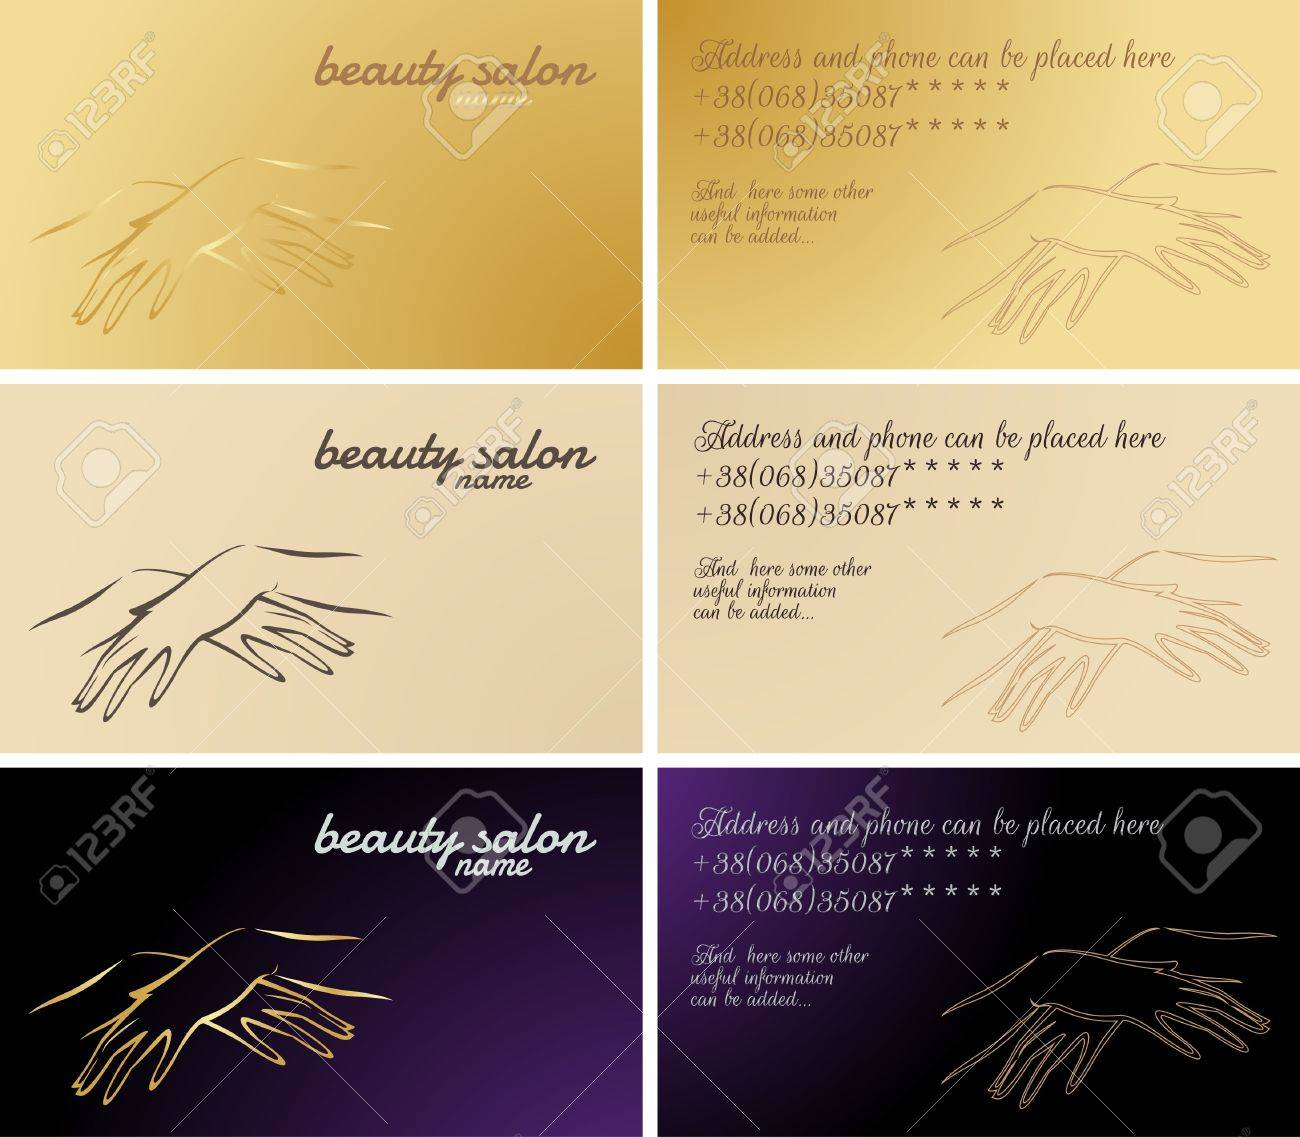 Set Of Business Cards, Cosmetic And Manicure Services Royalty Free ...